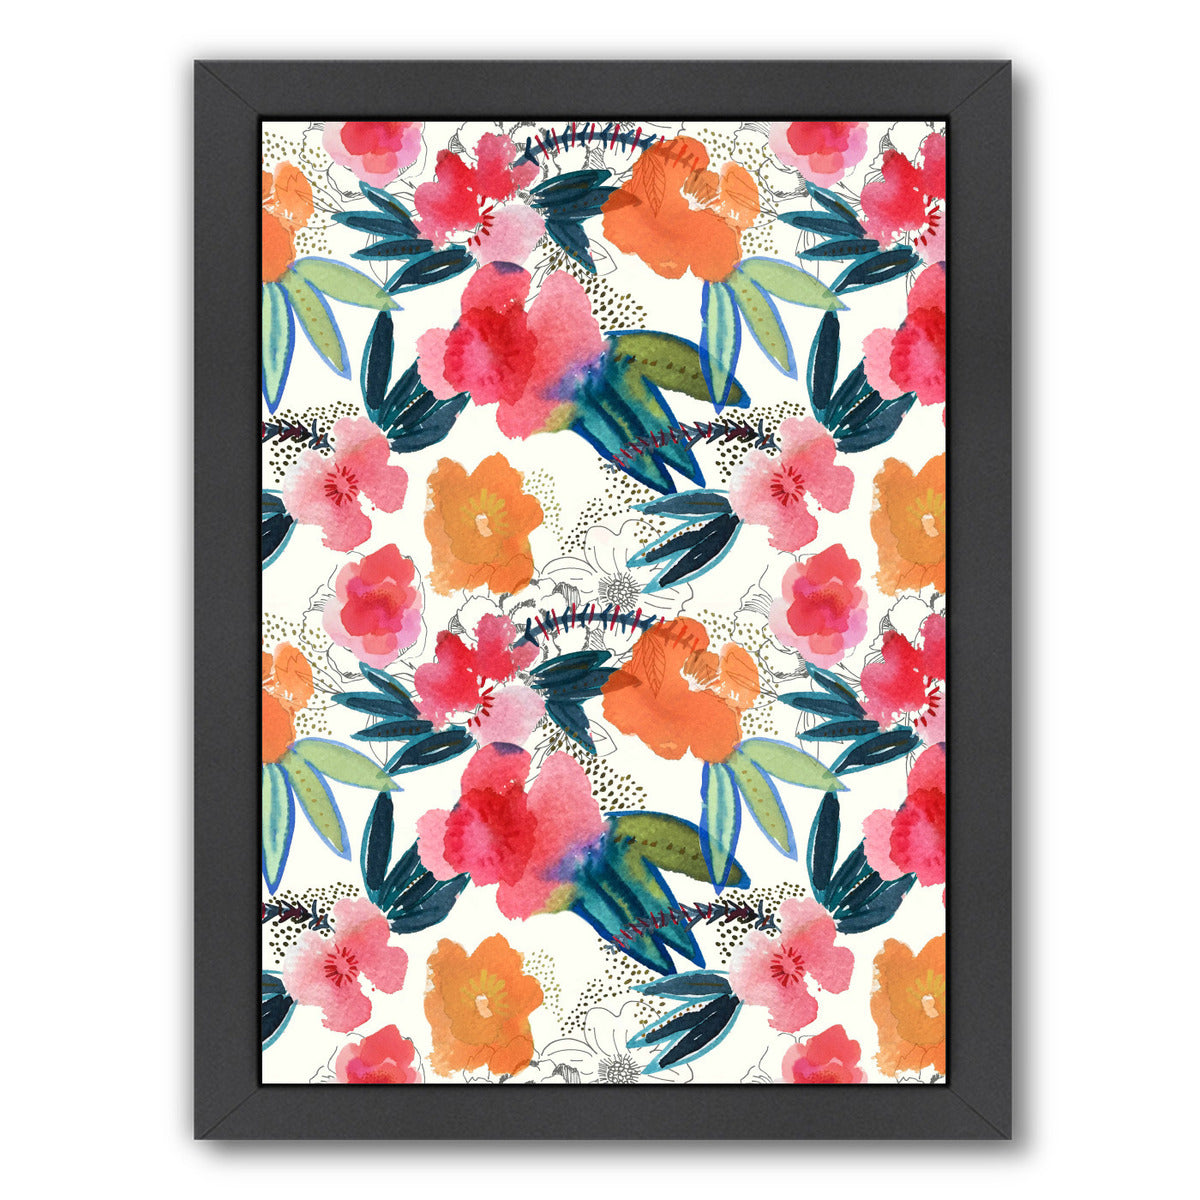 "Spring Forward by Hope Bainbridge - Black Framed Print, Wall Art, Hope Bainbridge, 8"" x 10"""